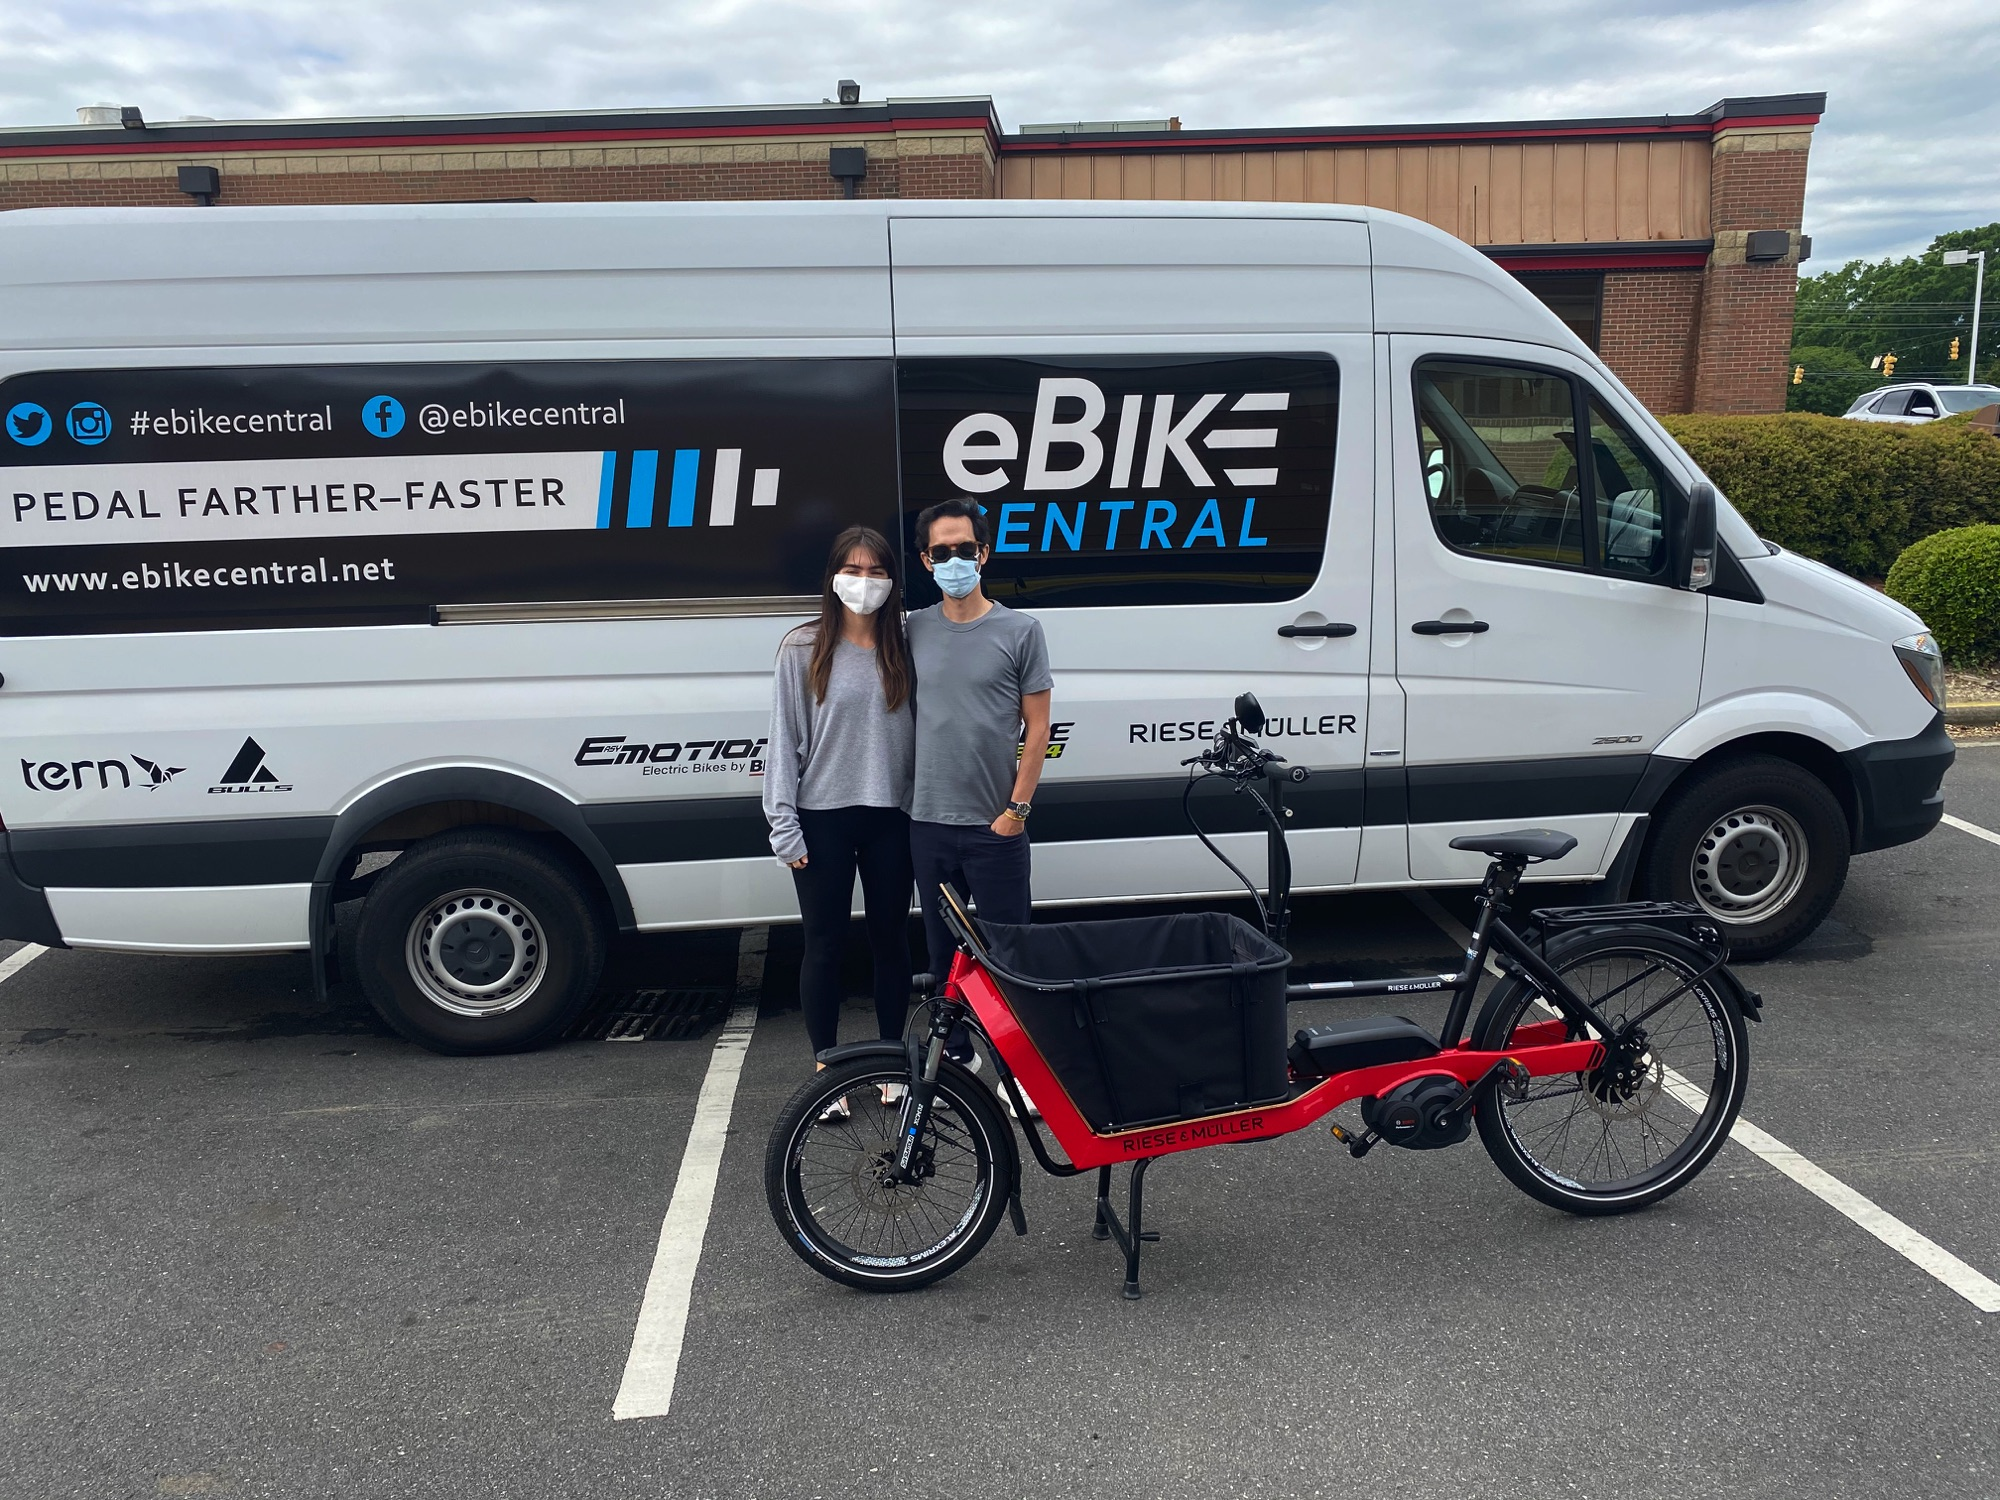 eBike Central in Miami FL, Riese & Muller Packster 40 Vario HS